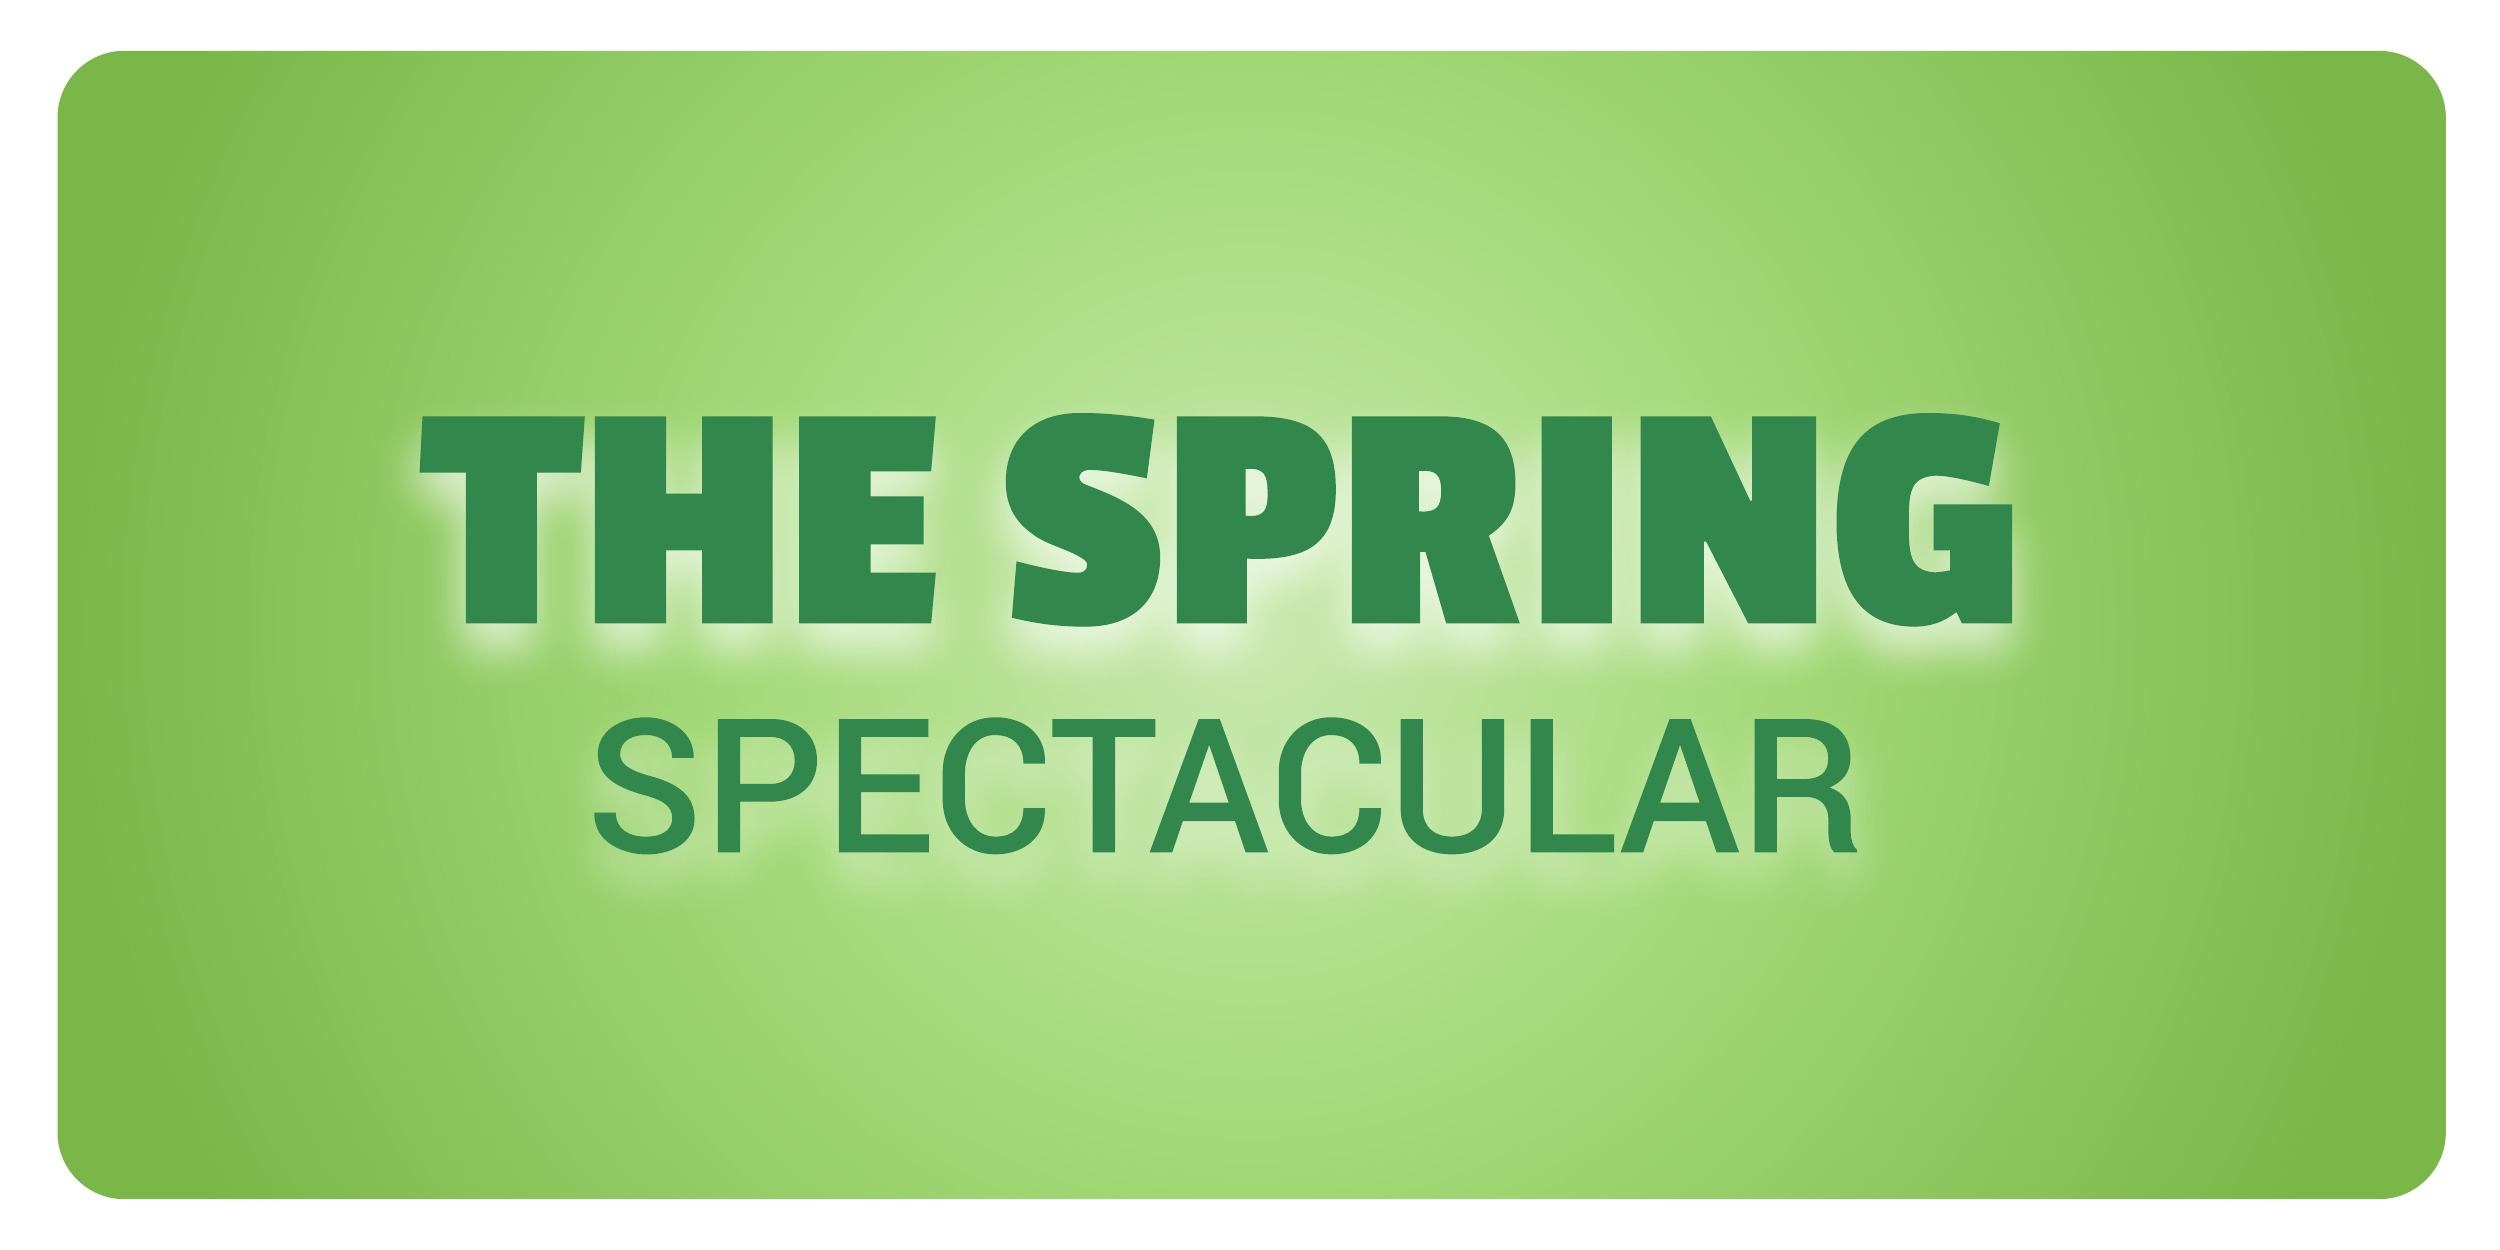 The Spring Spectacular Weekend